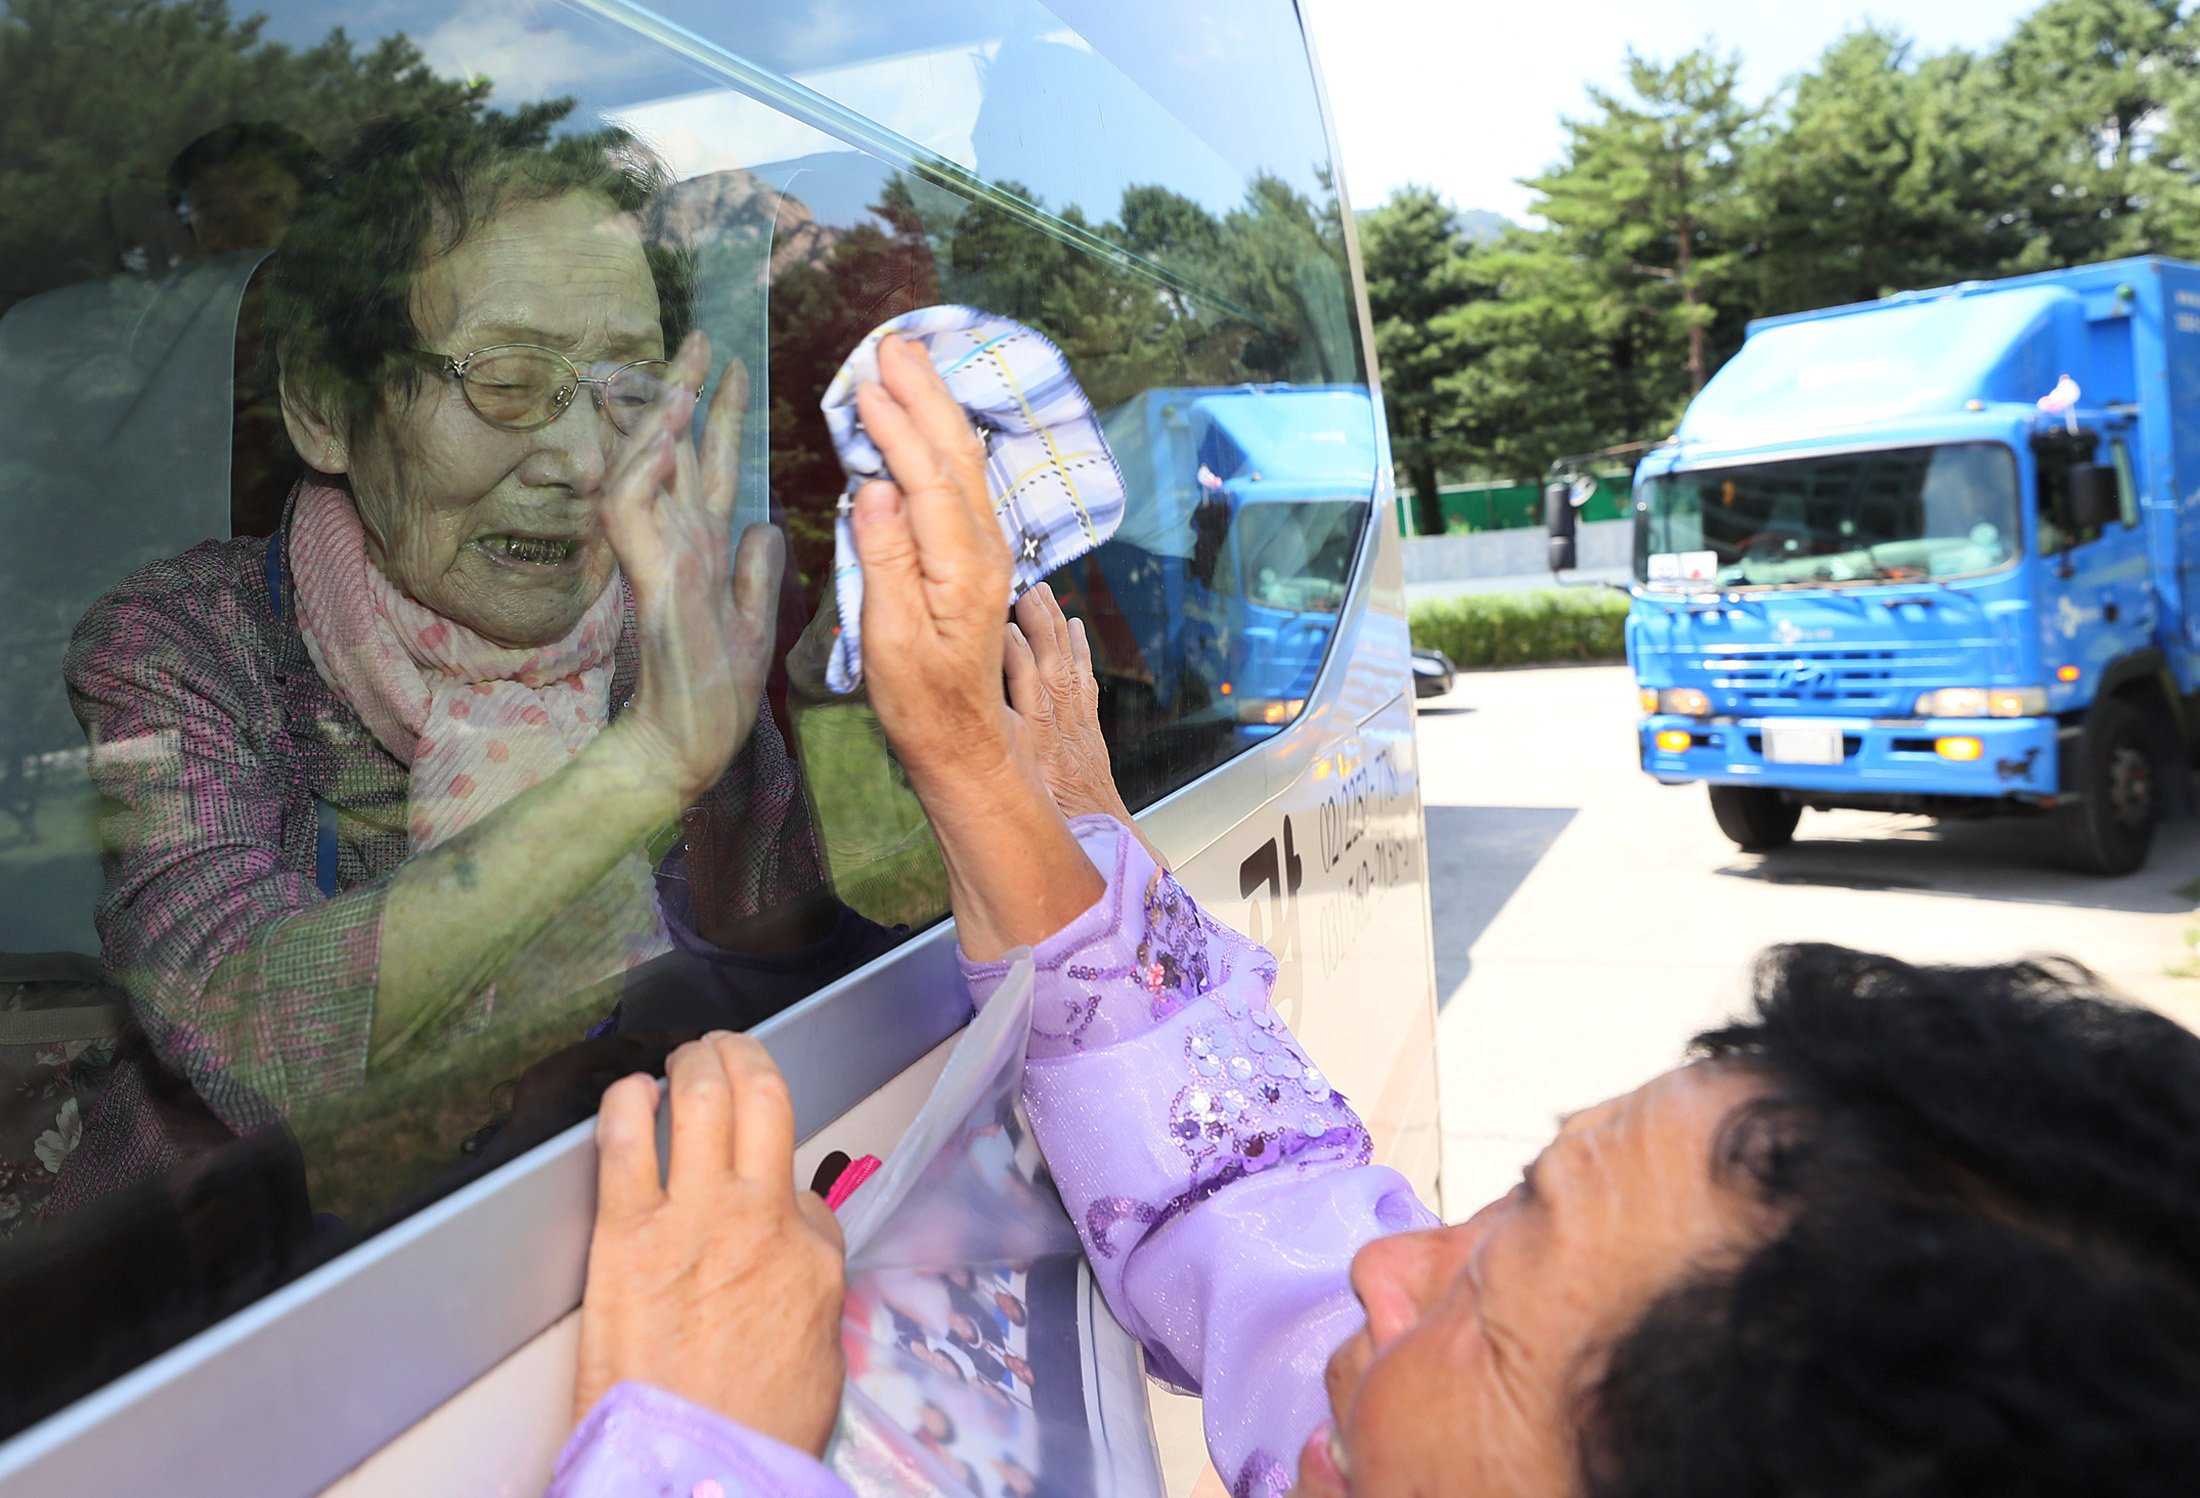 A North Korean woman bids farewell to her South Korean family members as they leave after a reunion at Mount Kumgang resort